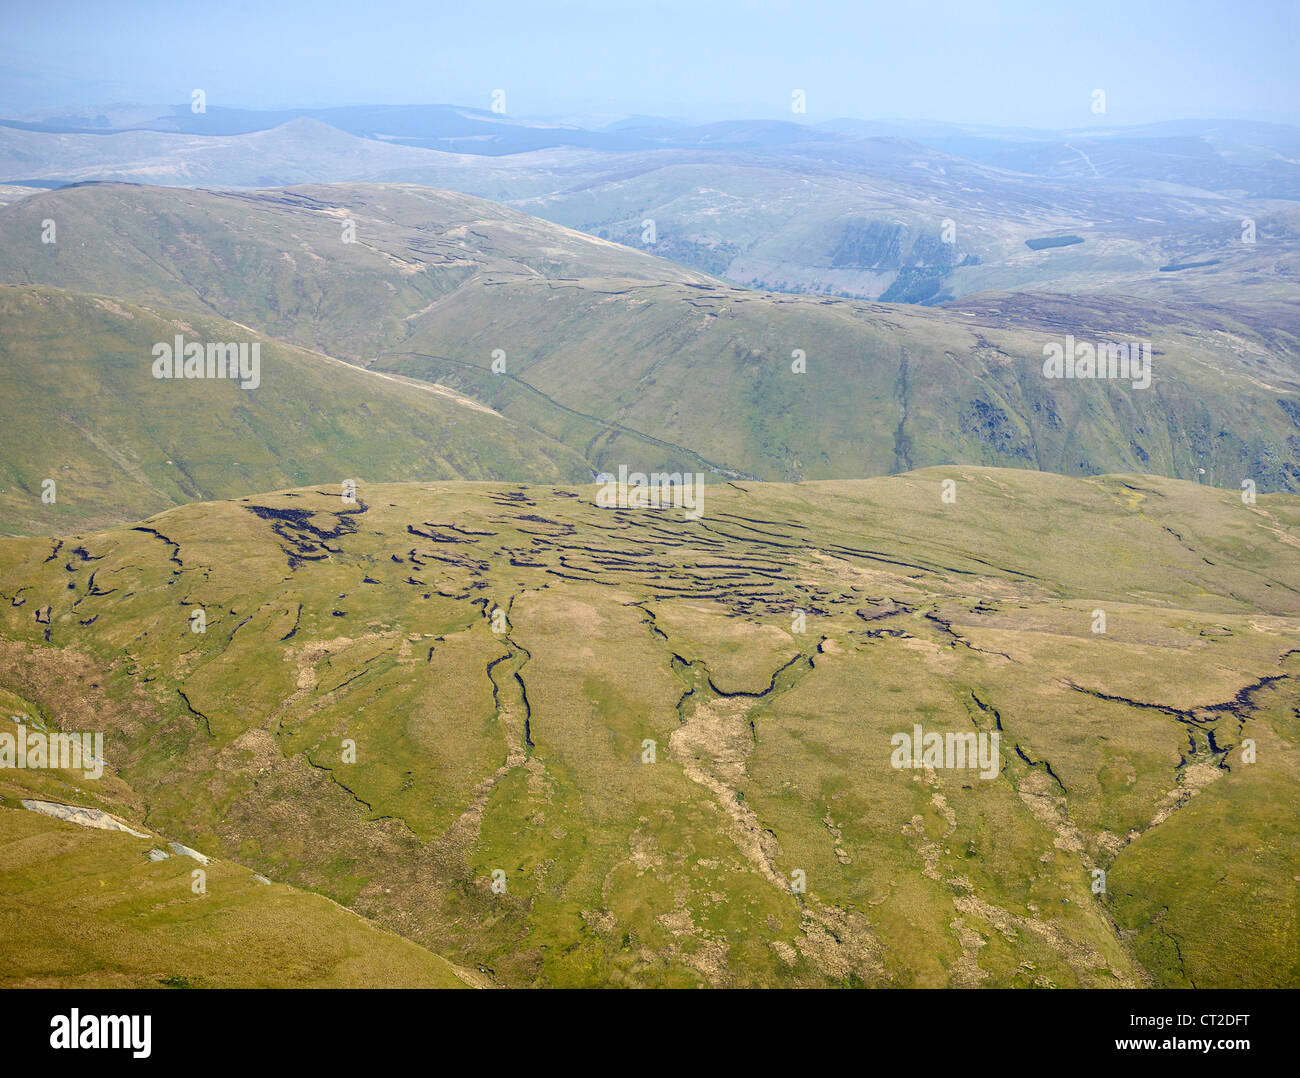 Shropshire Hills, shot from the air, Shropshire, England, UK - Stock Image